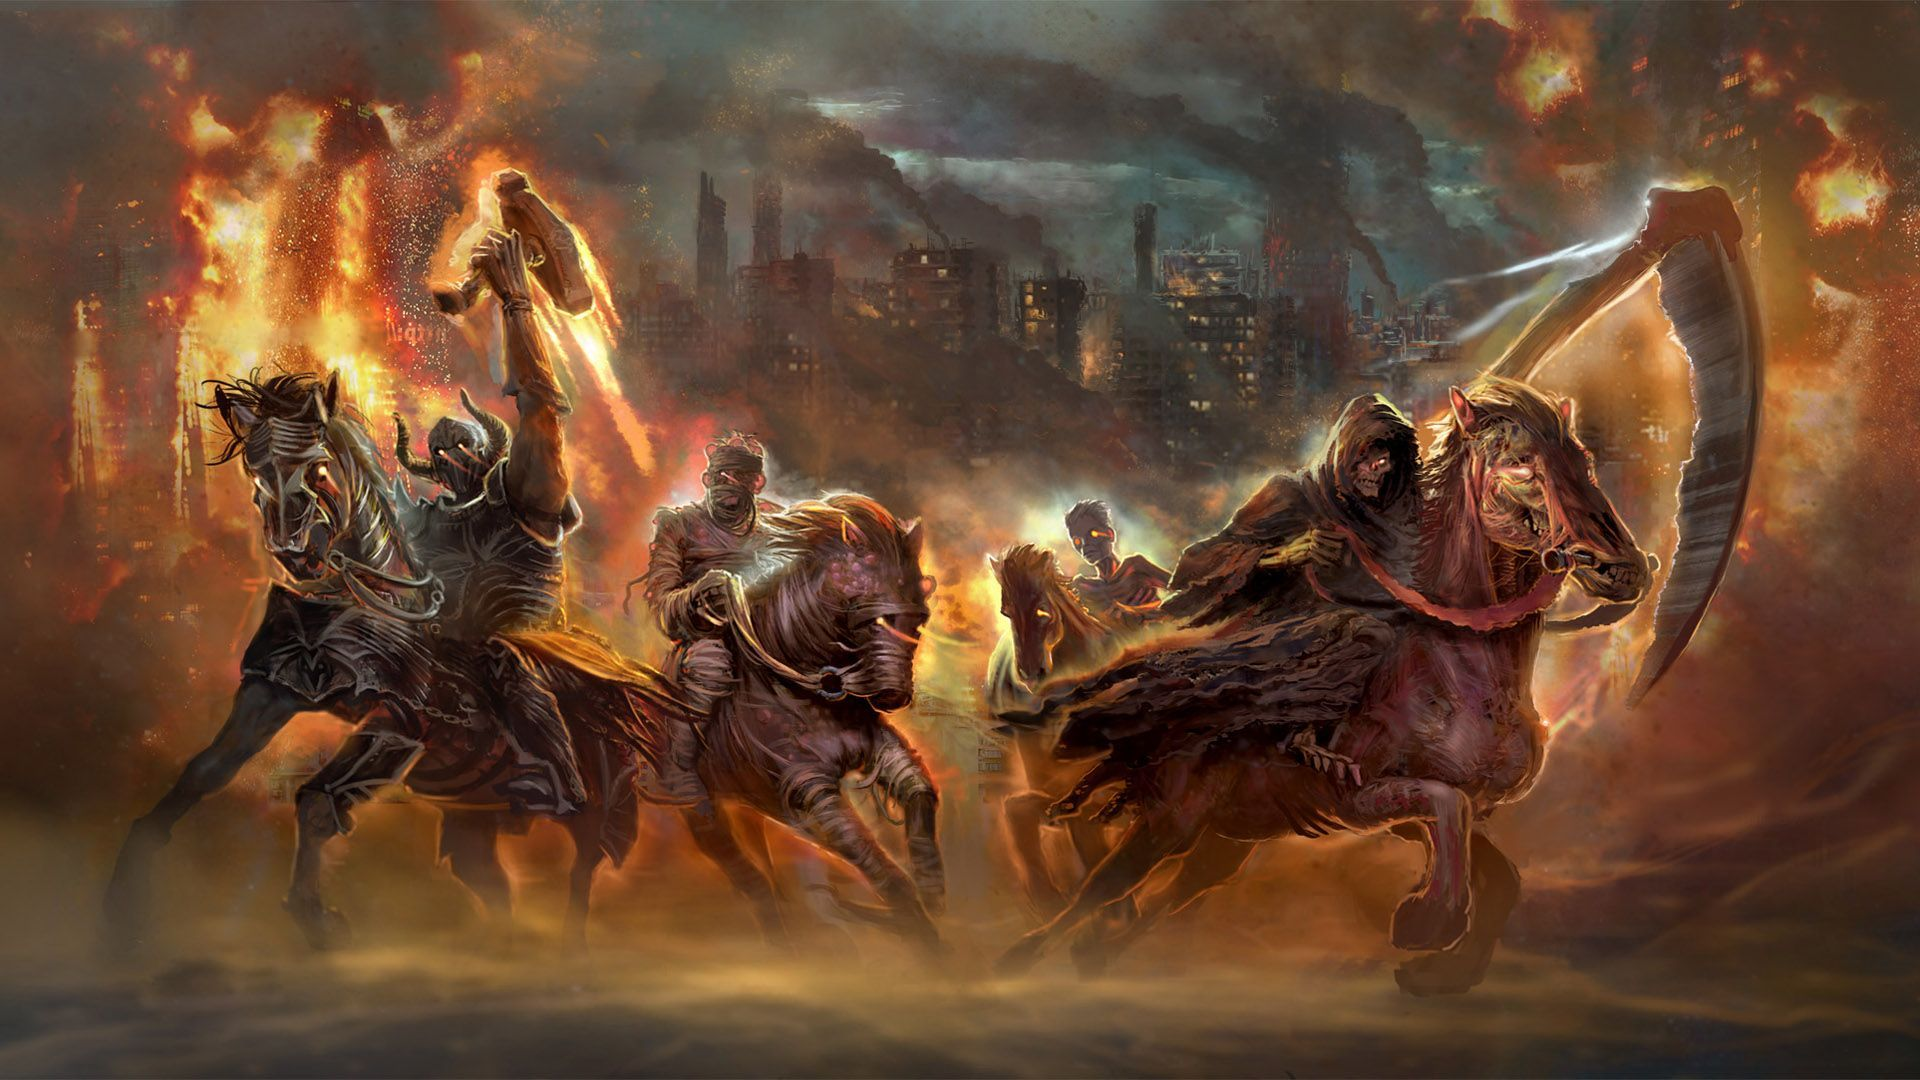 the four horsemen of the apocalypse fantasy hd wallpaper 1920x1080 1920x1080